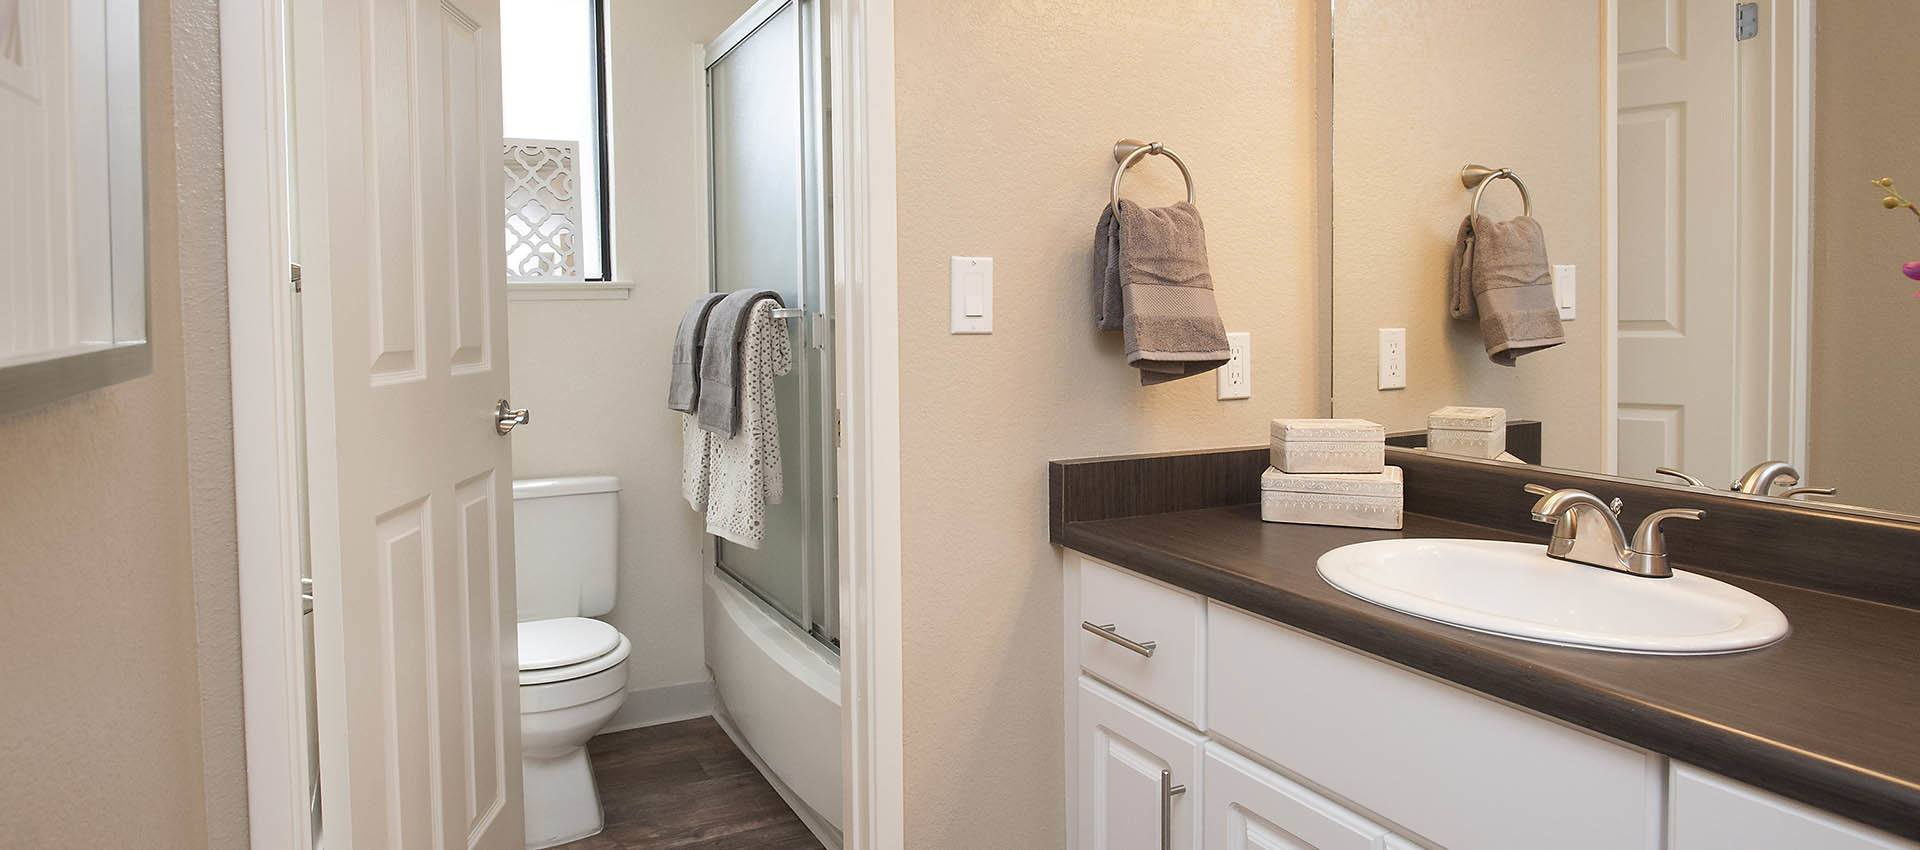 Large Bathroom With Private Shower And Commode at Hidden Lake Condominium Rentals in Sacramento, California